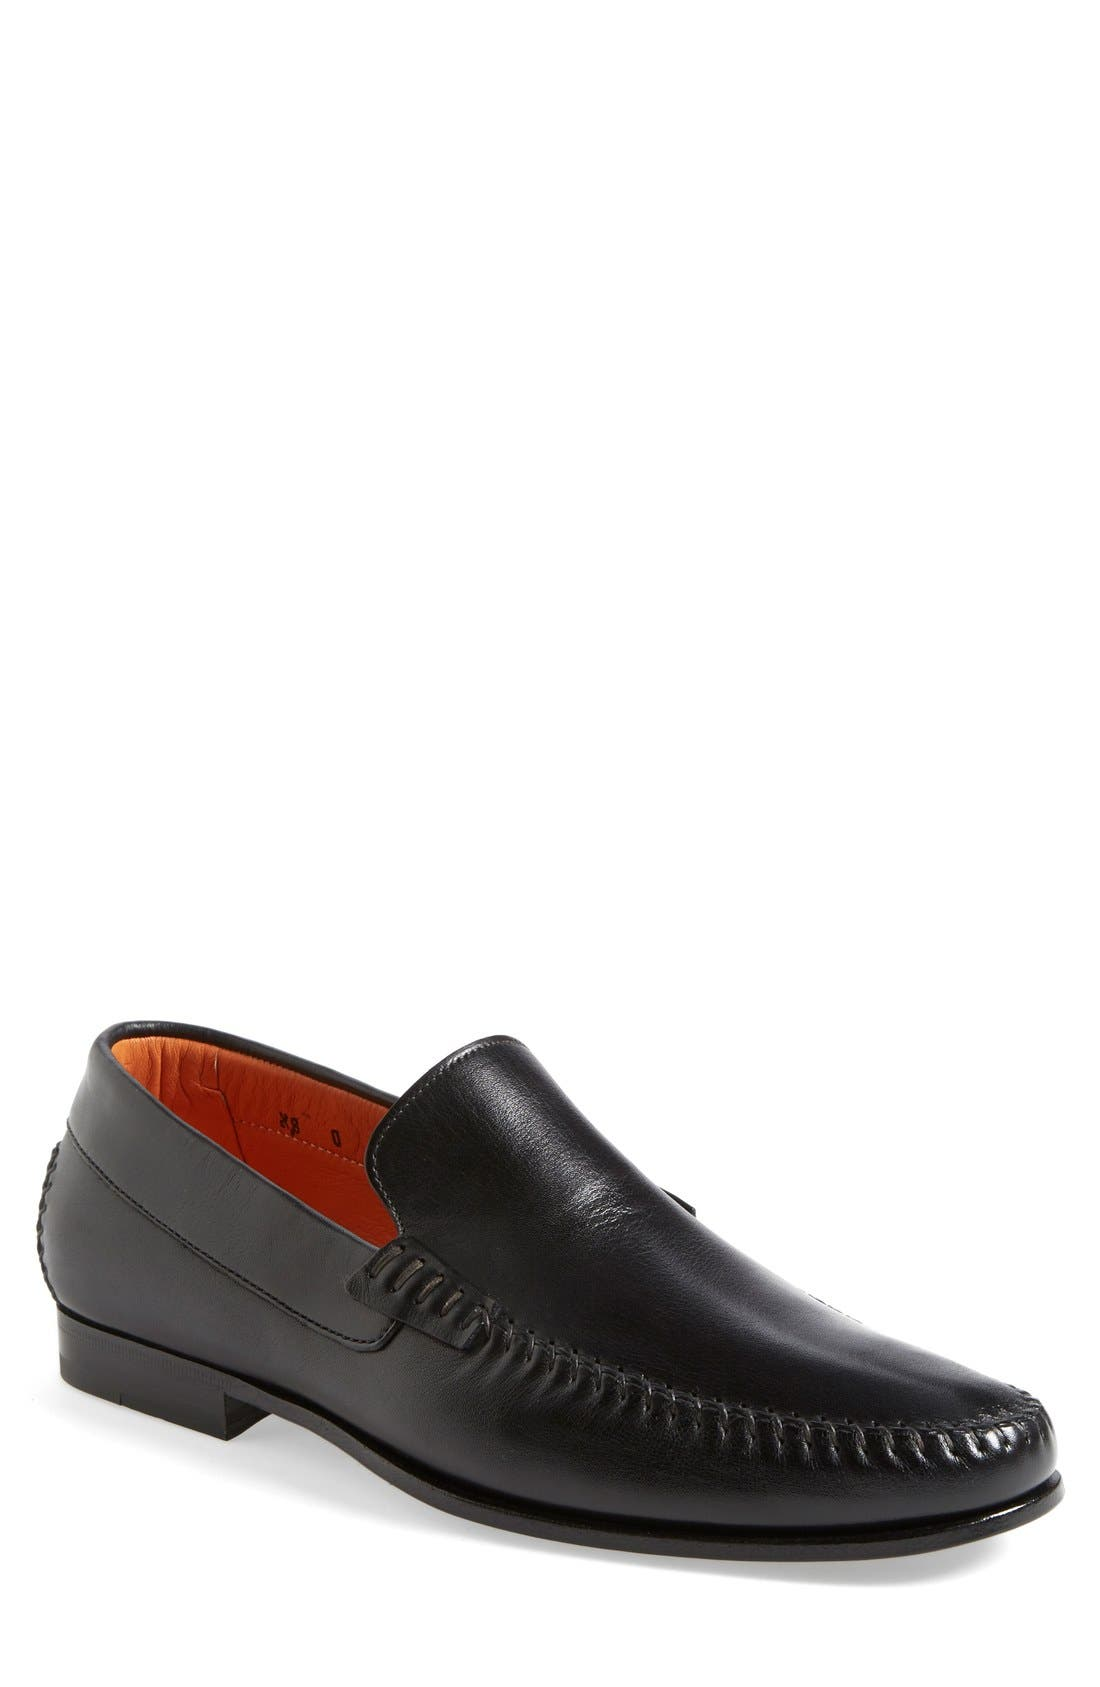 'Auburn' Venetian Loafer,                         Main,                         color, Black Leather